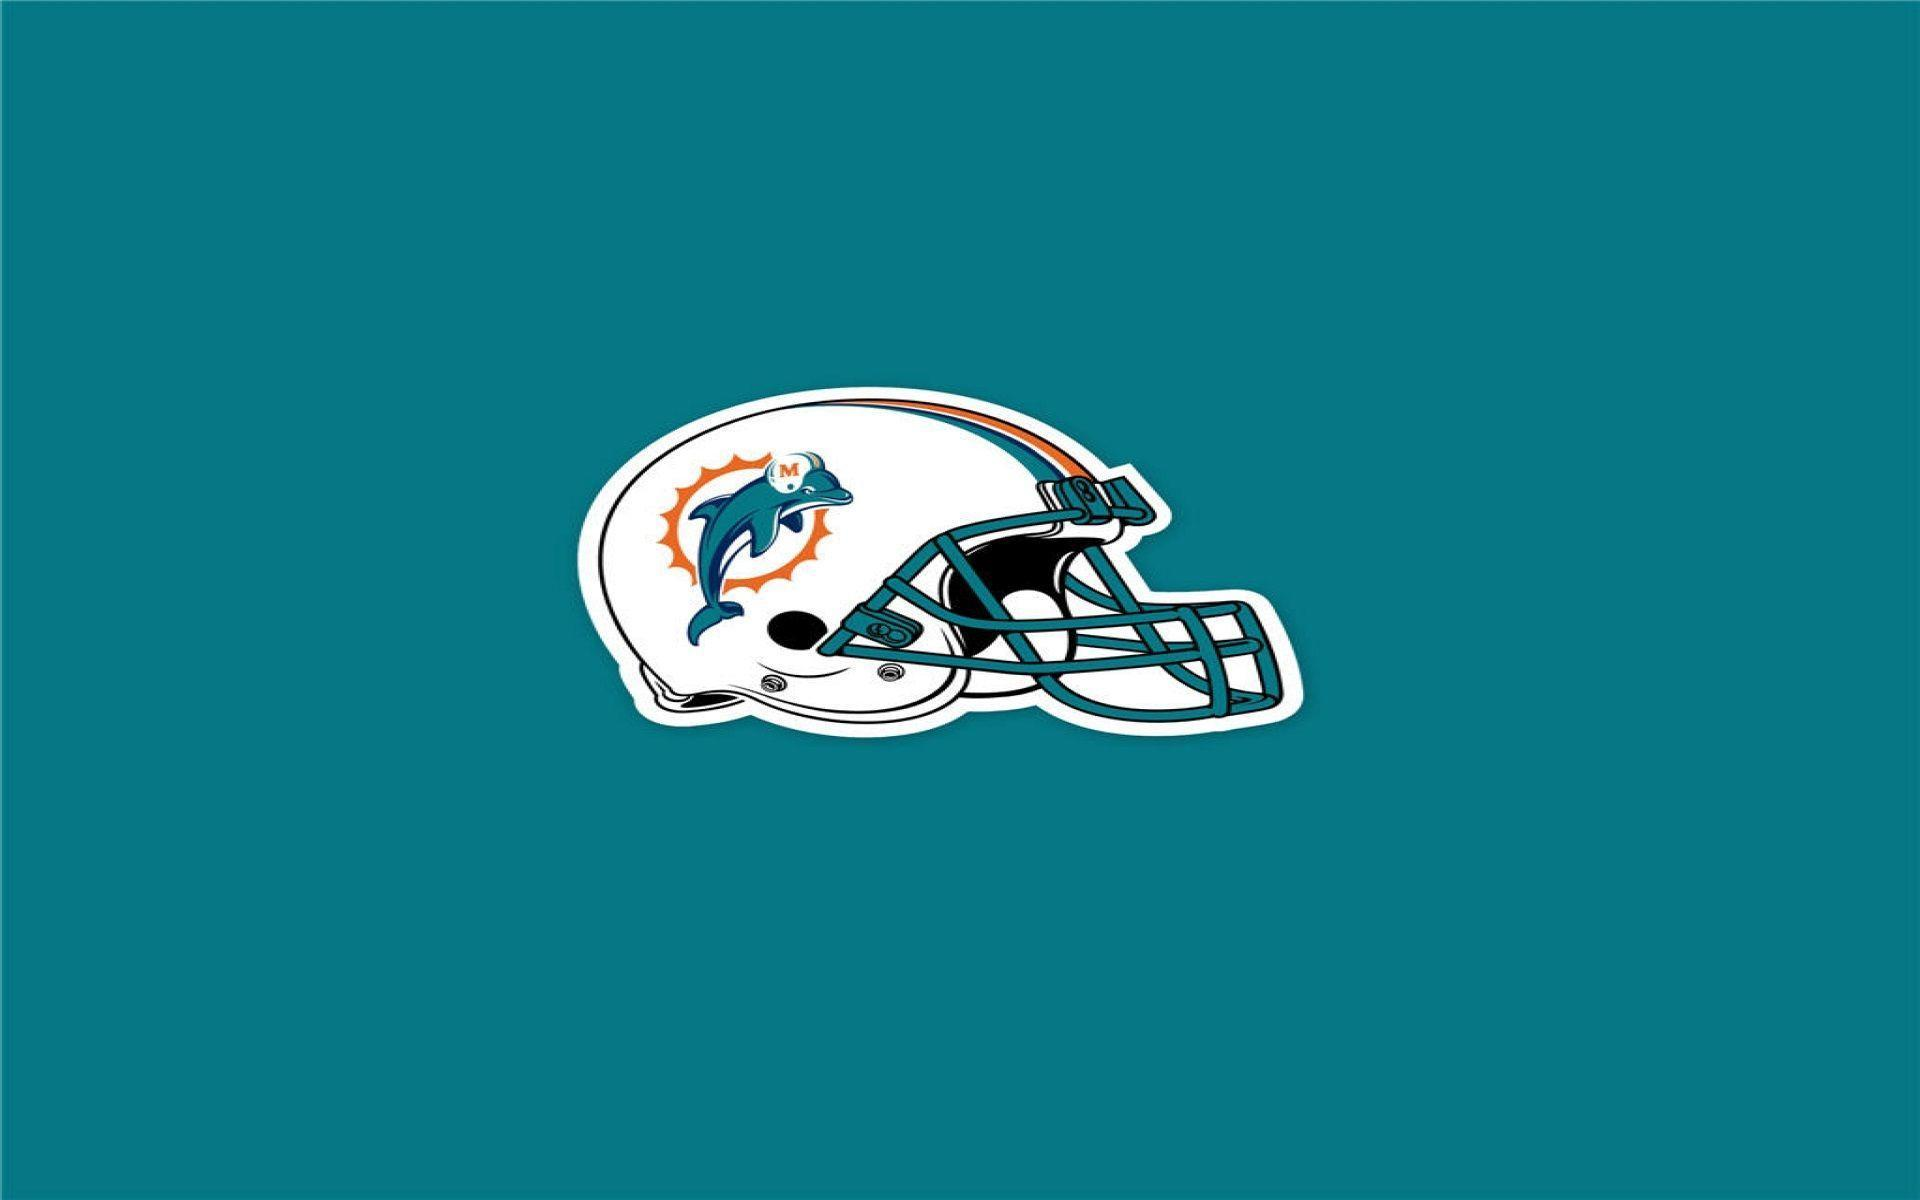 Miami Dolphins Wallpapers HD